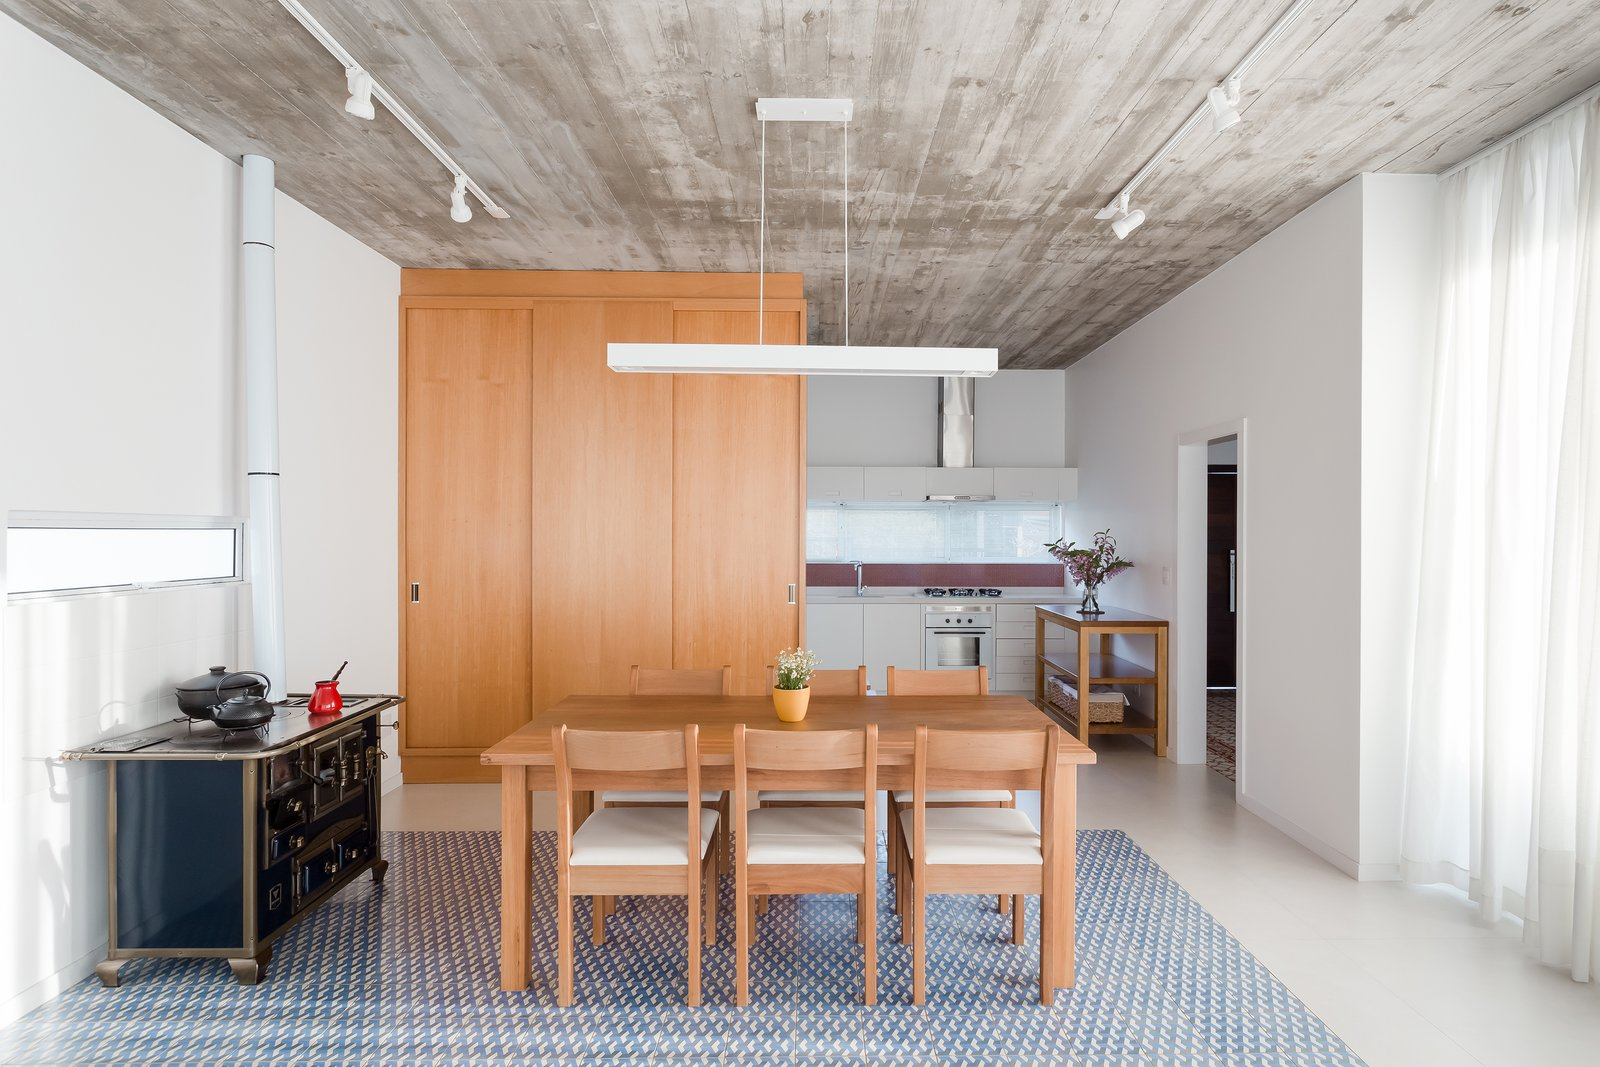 Dining Room, Track Lighting, Table, Chair, and Ceramic Tile Floor  View House by Barbara Becker